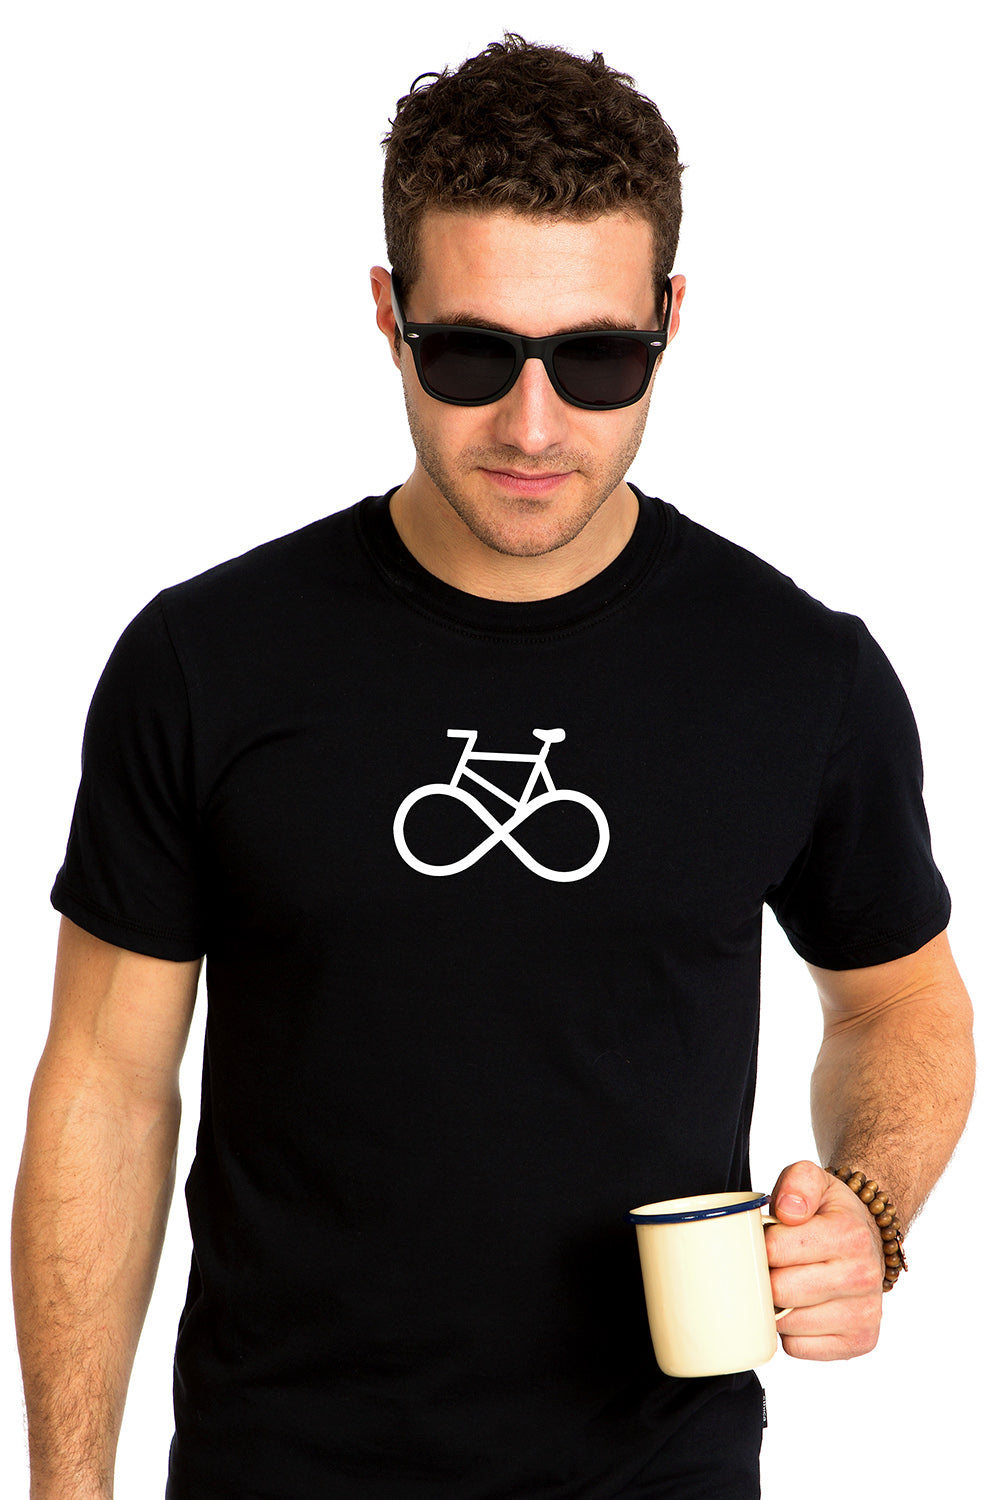 Life cycle 2.0 Bicycle Infinity Symbol T-shirt Black PLB Design Organic Local